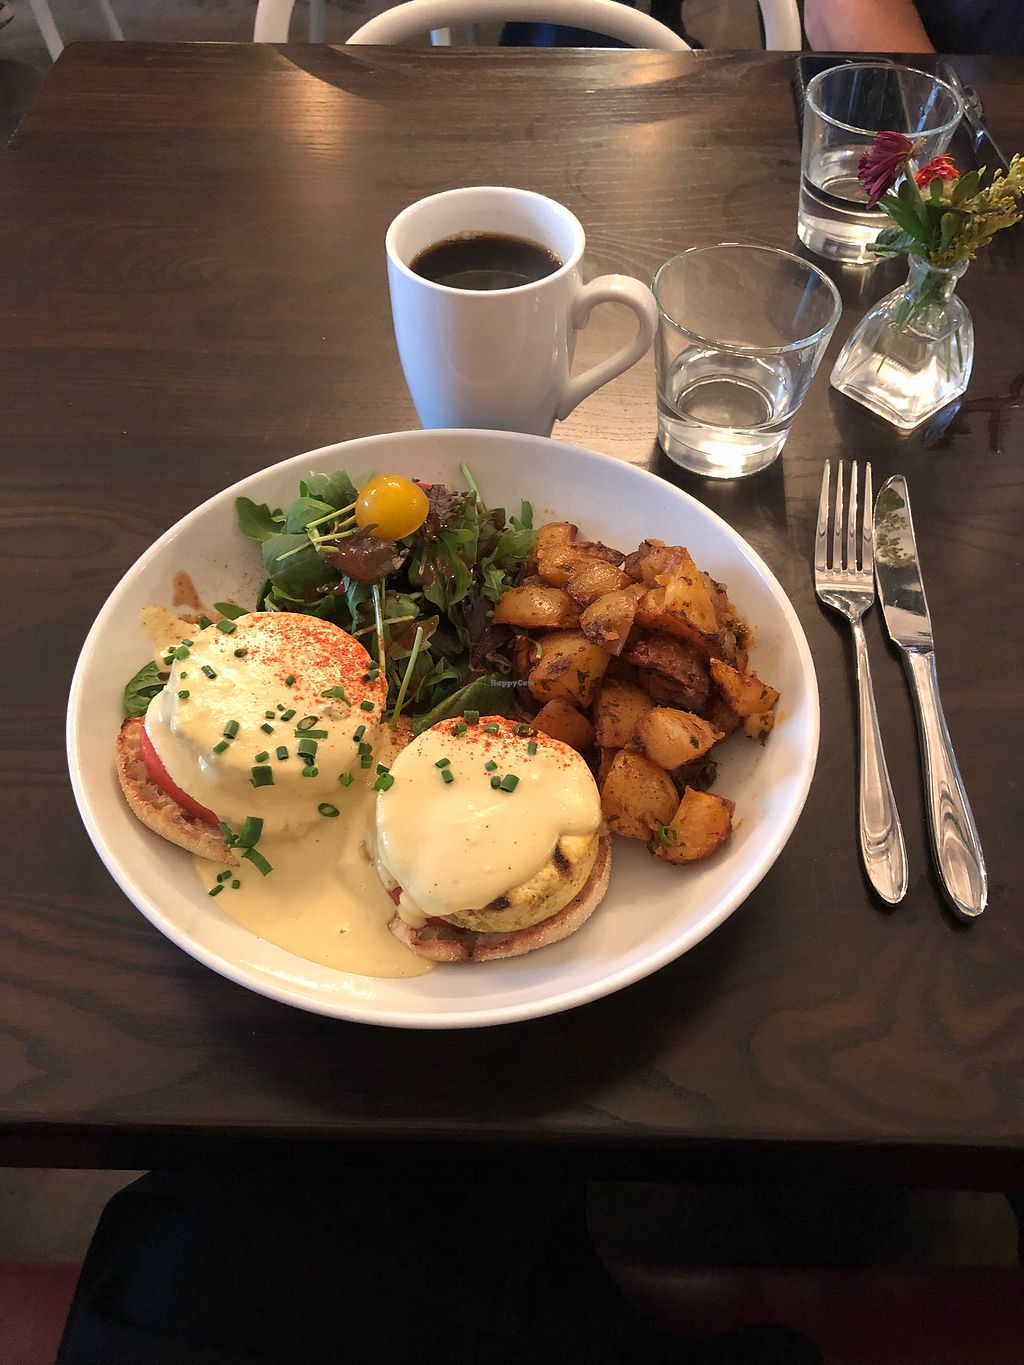 """Photo of Modern Love Brooklyn  by <a href=""""/members/profile/Bariann"""">Bariann</a> <br/>Tofu Benedict at Modern Love <br/> October 17, 2017  - <a href='/contact/abuse/image/79835/316137'>Report</a>"""